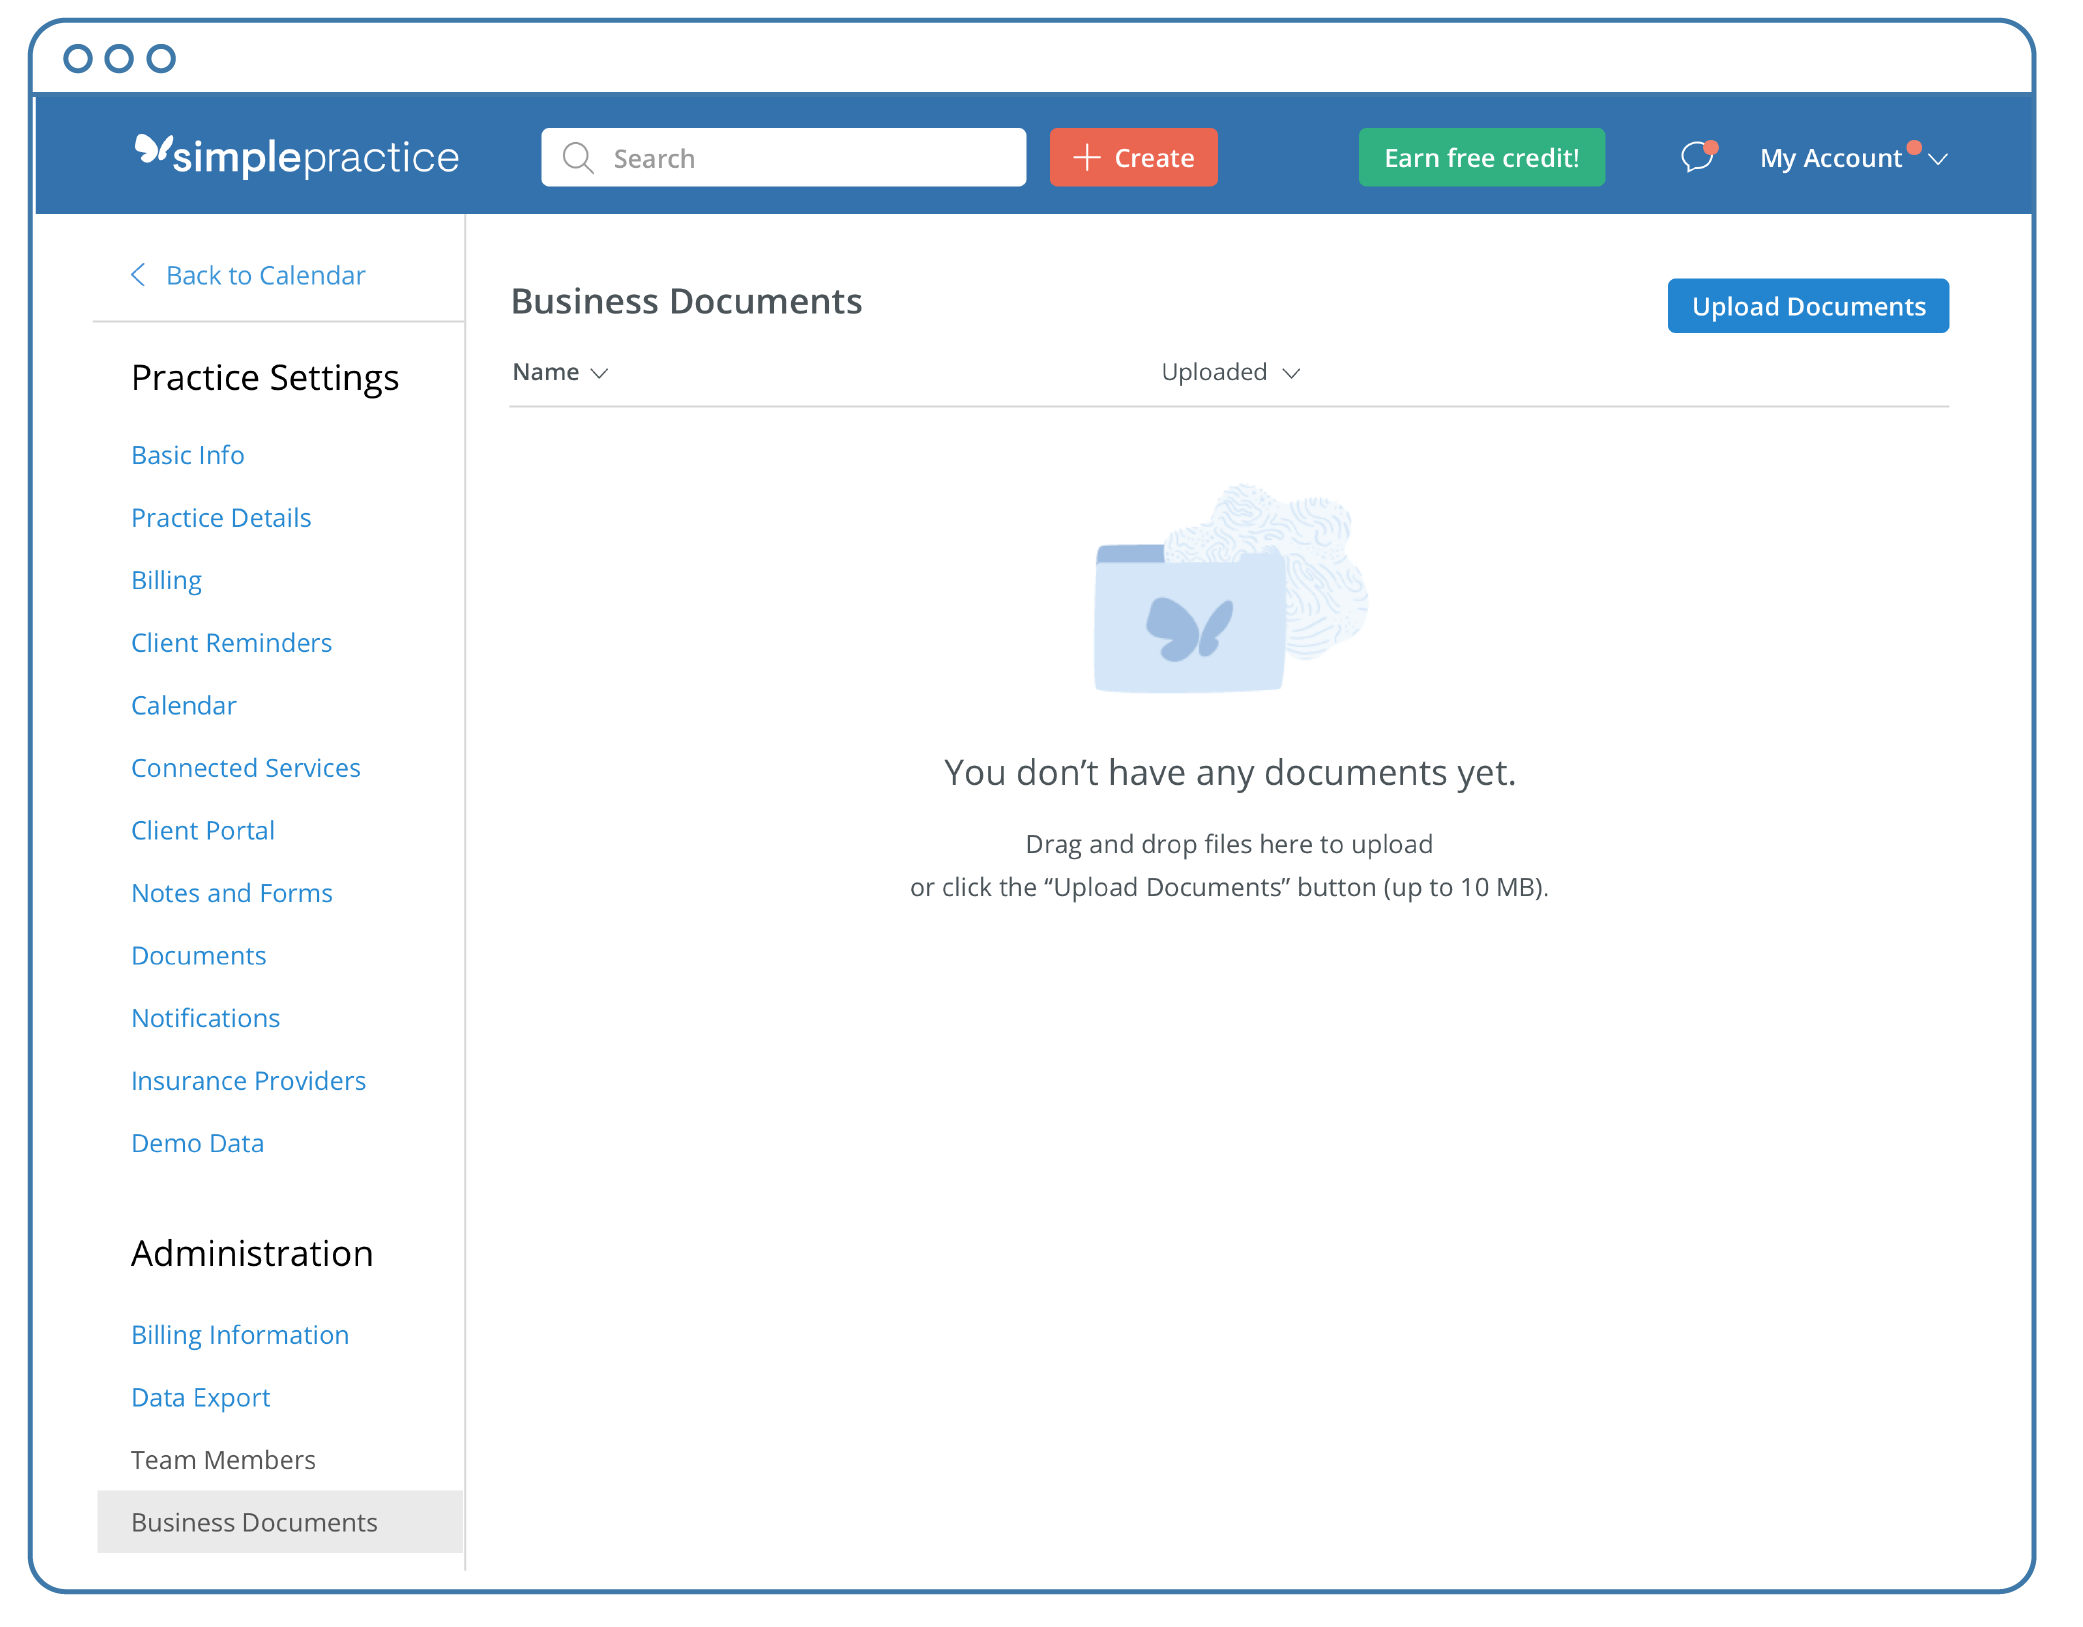 You can upload business documents by drag and drop or use the blue Upload Documents button at the top right of the Account Settings Business Documents section of your SimplePractice App account.